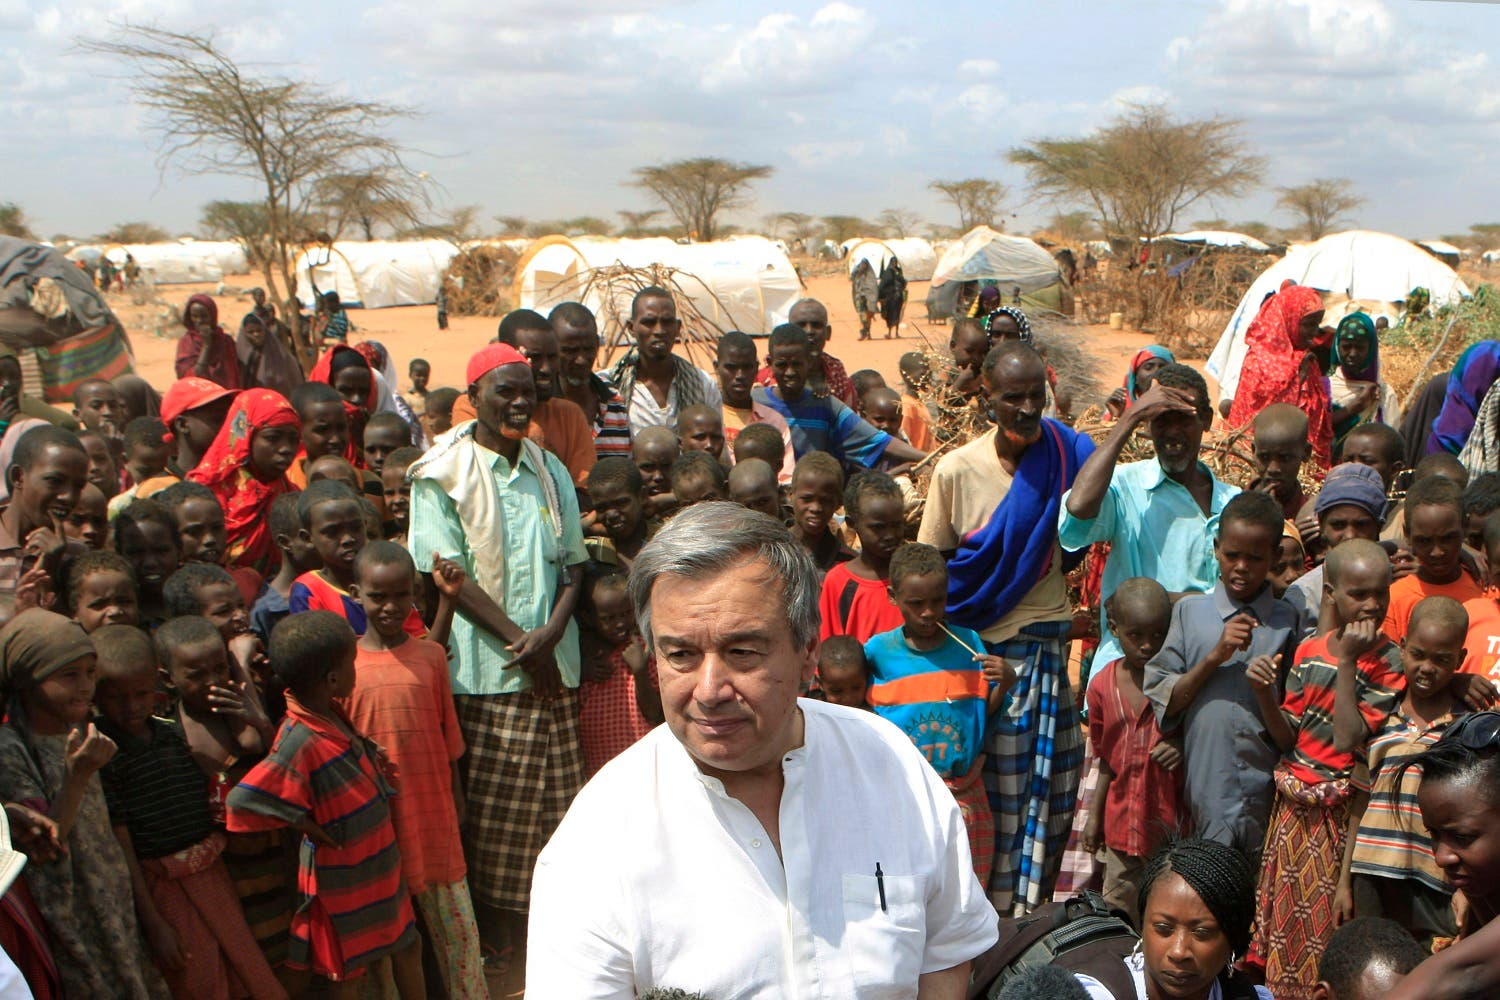 Guterres is surrounded by Somali refugees as he speaks to the media in an area where recent arrivals from Somalia have settled in 2011. (File photo: AP)